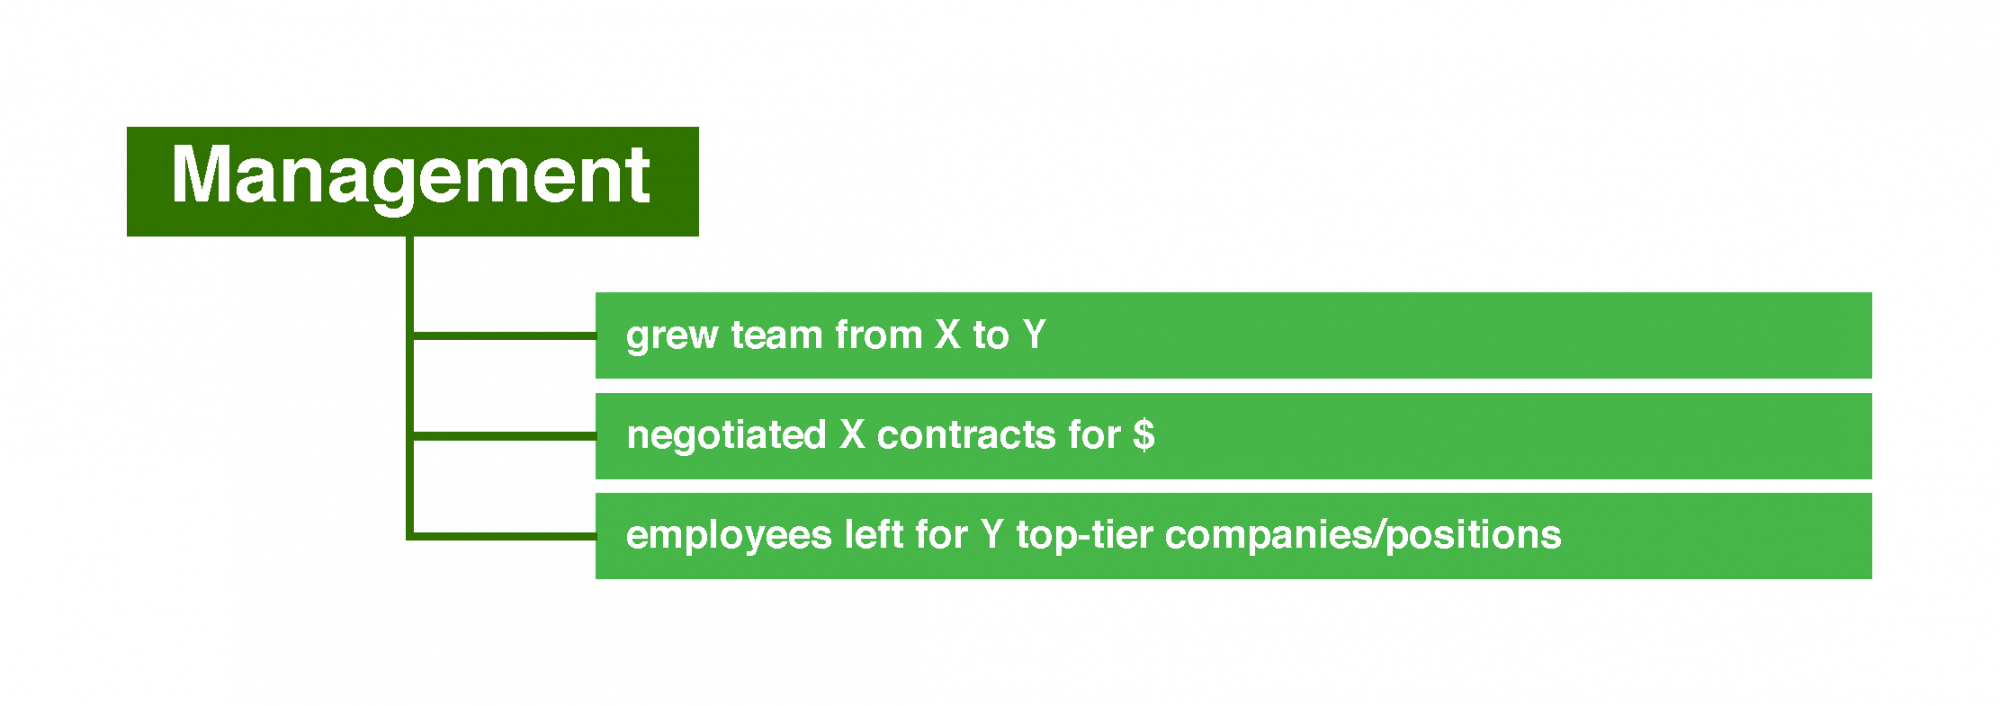 Potential numbers for management